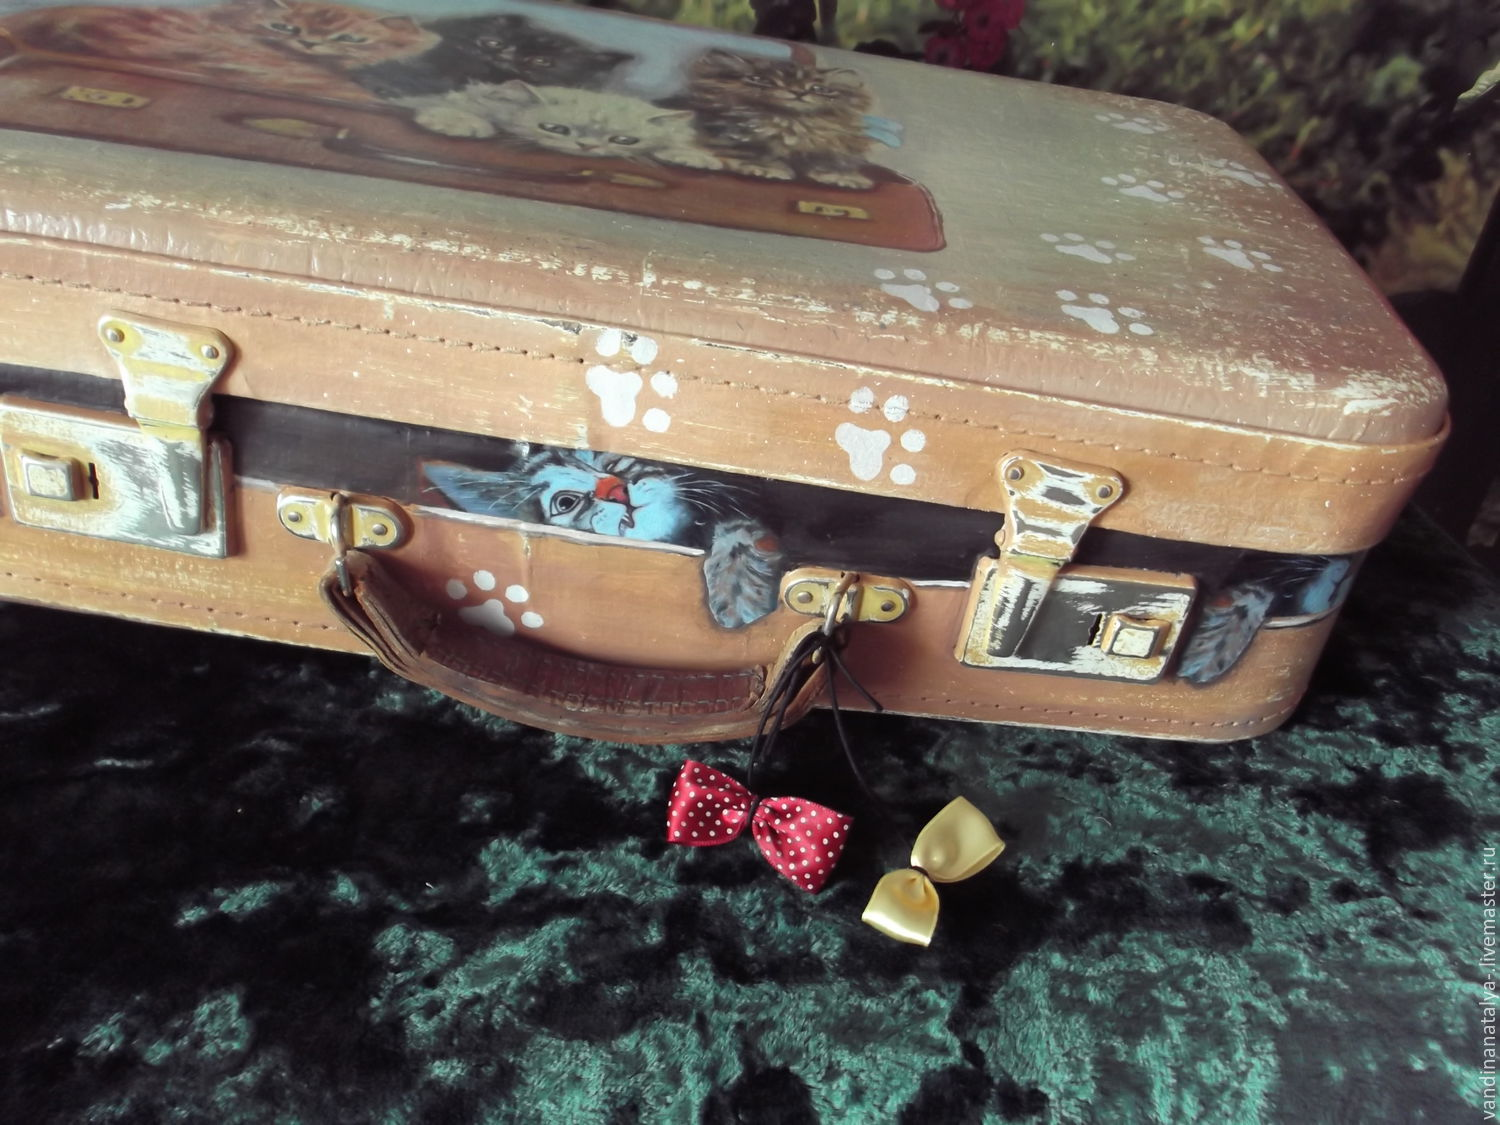 A suitcase with kittens